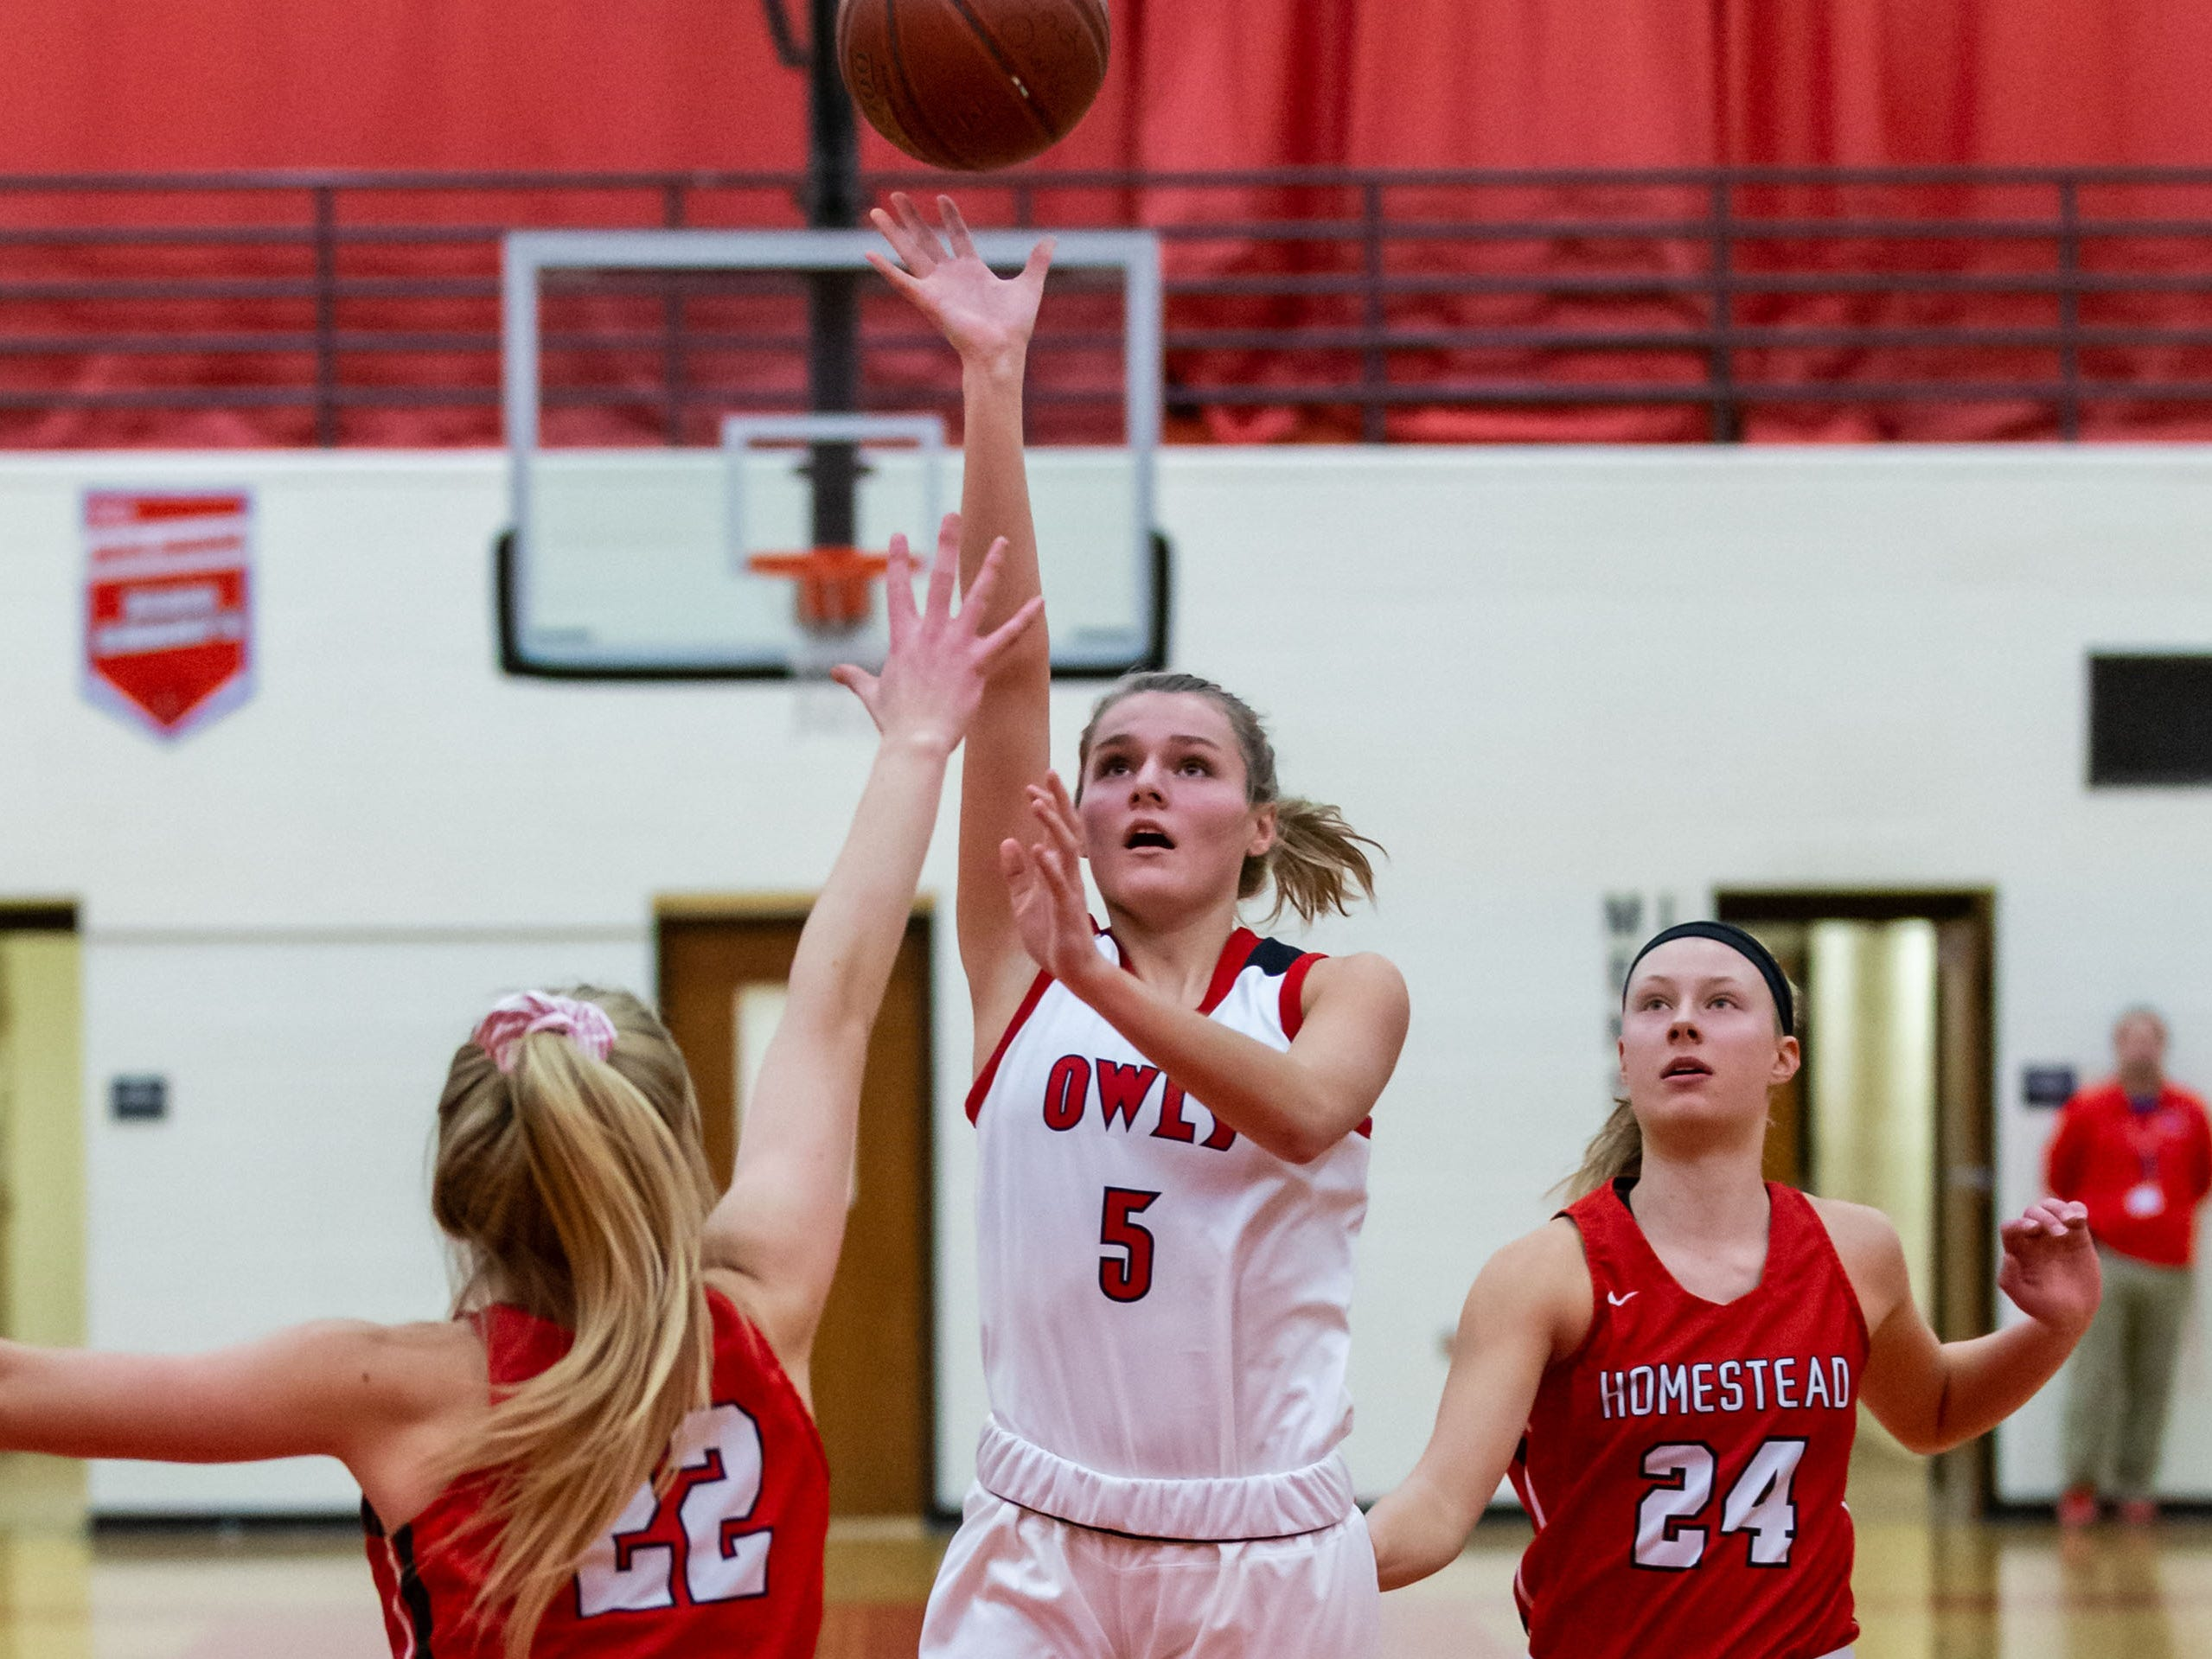 Slinger's Sydney Reinhardt (5) drives in for a shot during the game at home against Homestead on Friday, Jan. 11, 2019.